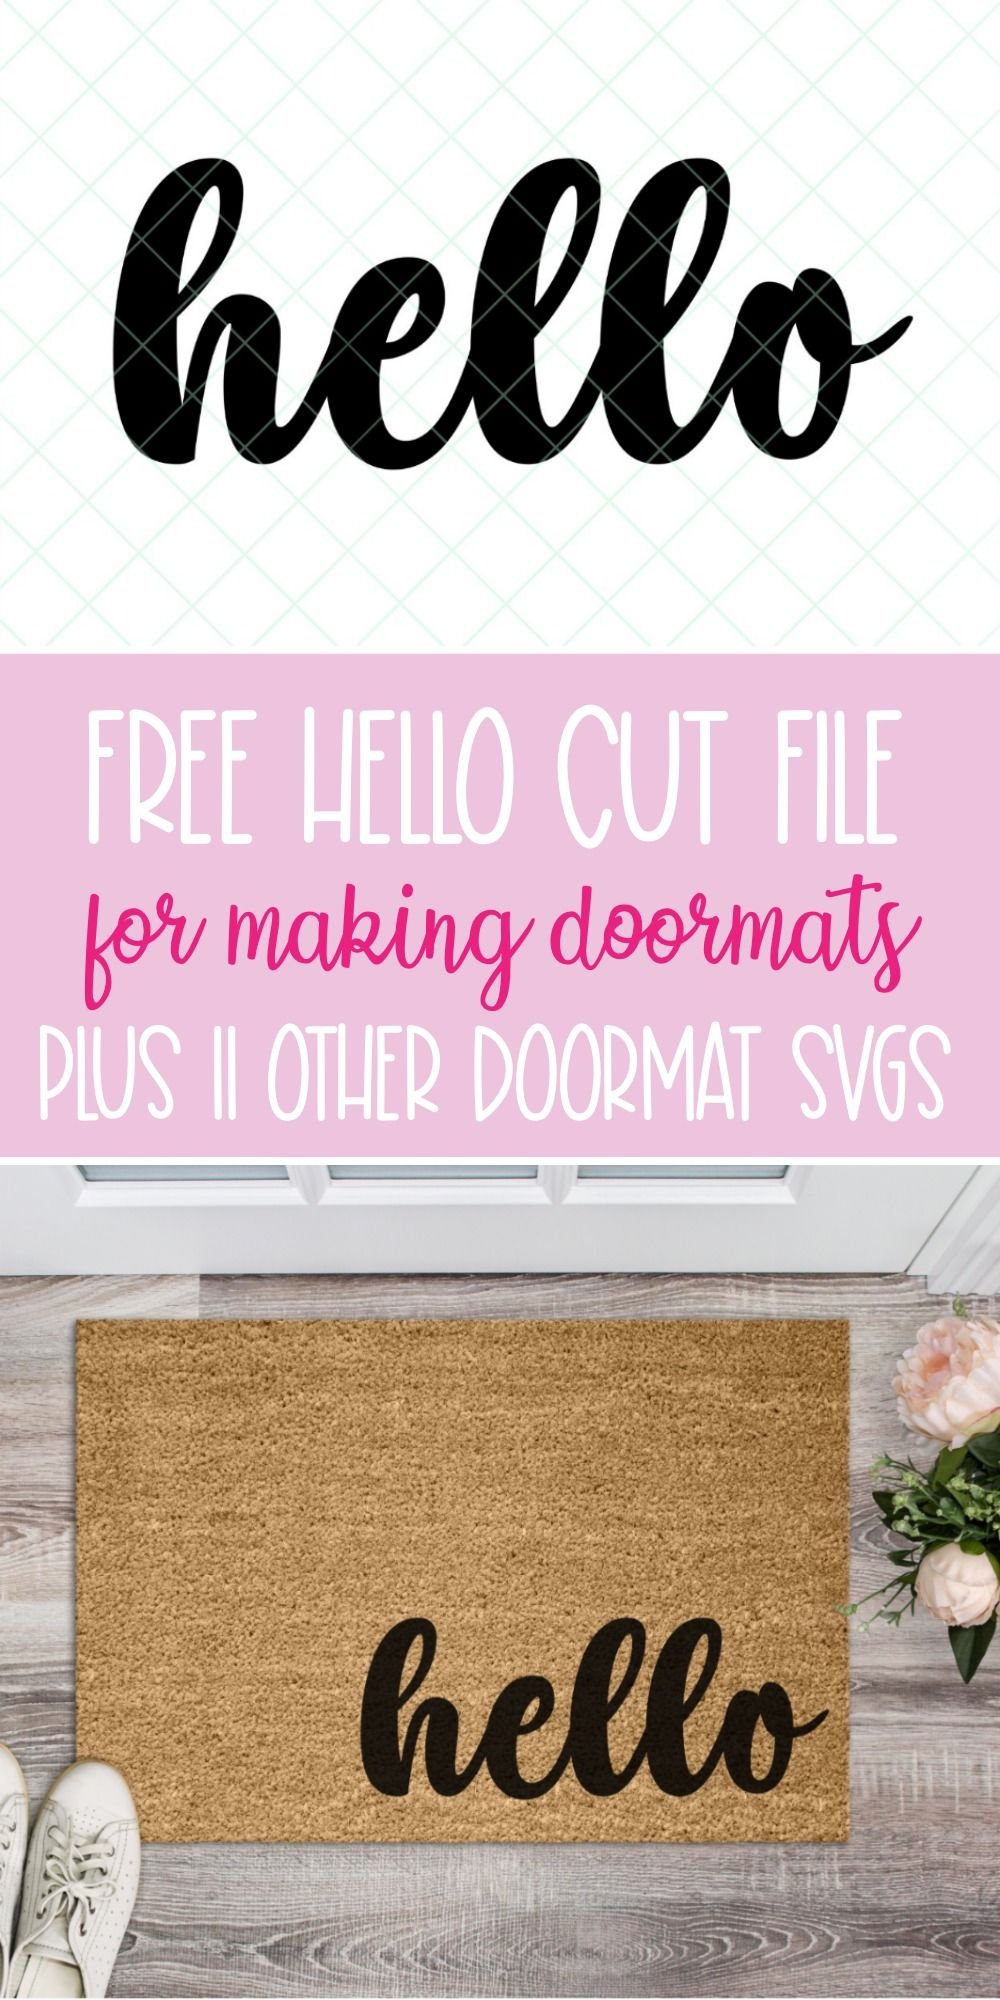 Create a DIY Doormat using one of these 11 free Doormat SVG Files and your Cricut Maker or Cricut Explore! Craft a Hello Doormat to help decorate your front entrance! #DIY #Craft #FreeSVG #CutFiles #CricutMaker #CricutExplore  #CricutCrafts #CricutMade